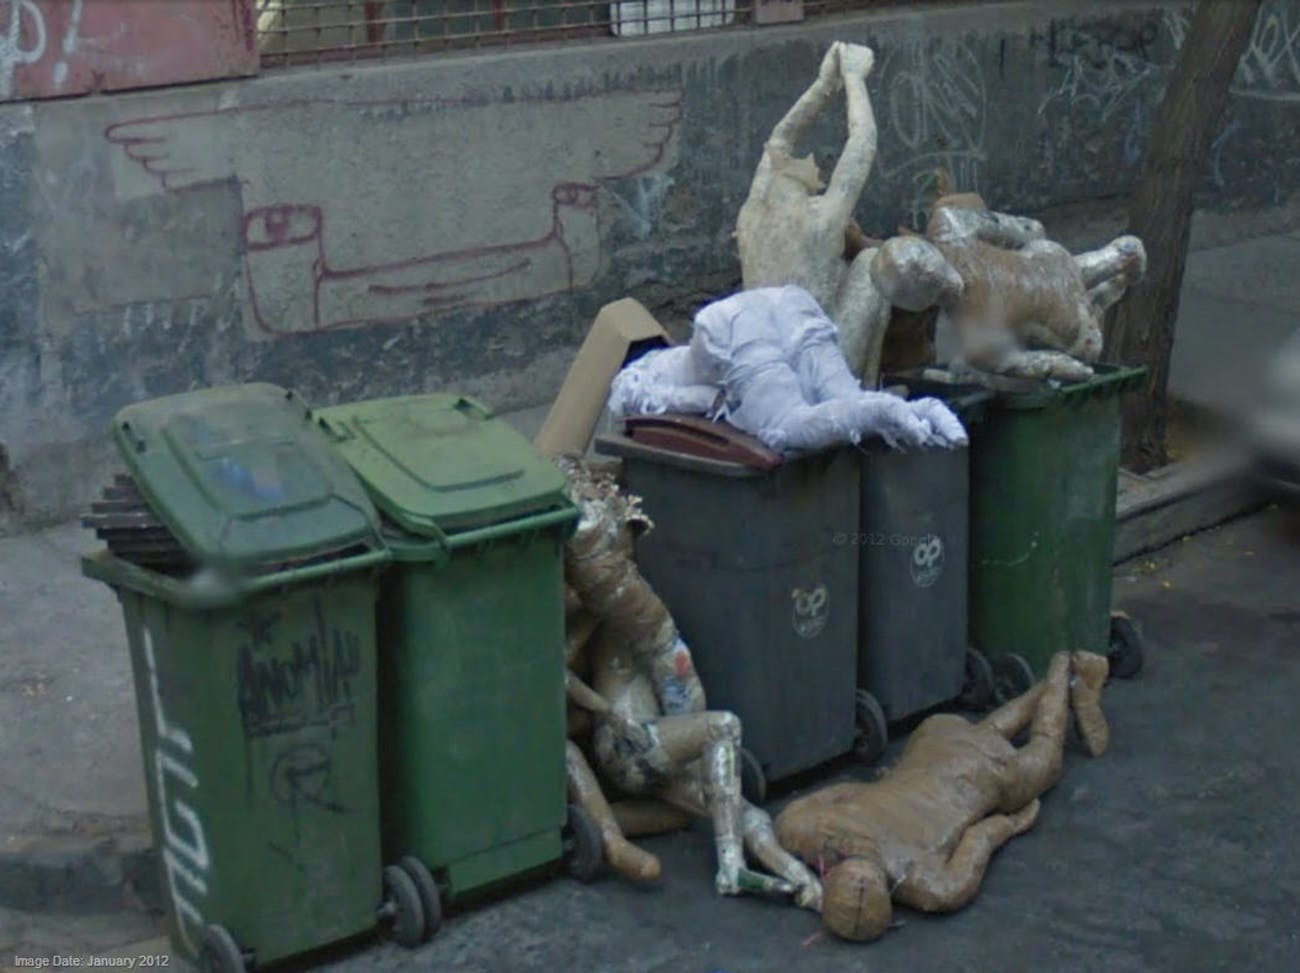 15 Google Maps Images That Seem to Freak People Out ... on google street view zombie, google dead body, google earth dead, google zombie map, google earth street view funny, android dead, google street dead, google the dead gentleman, map of walking dead,